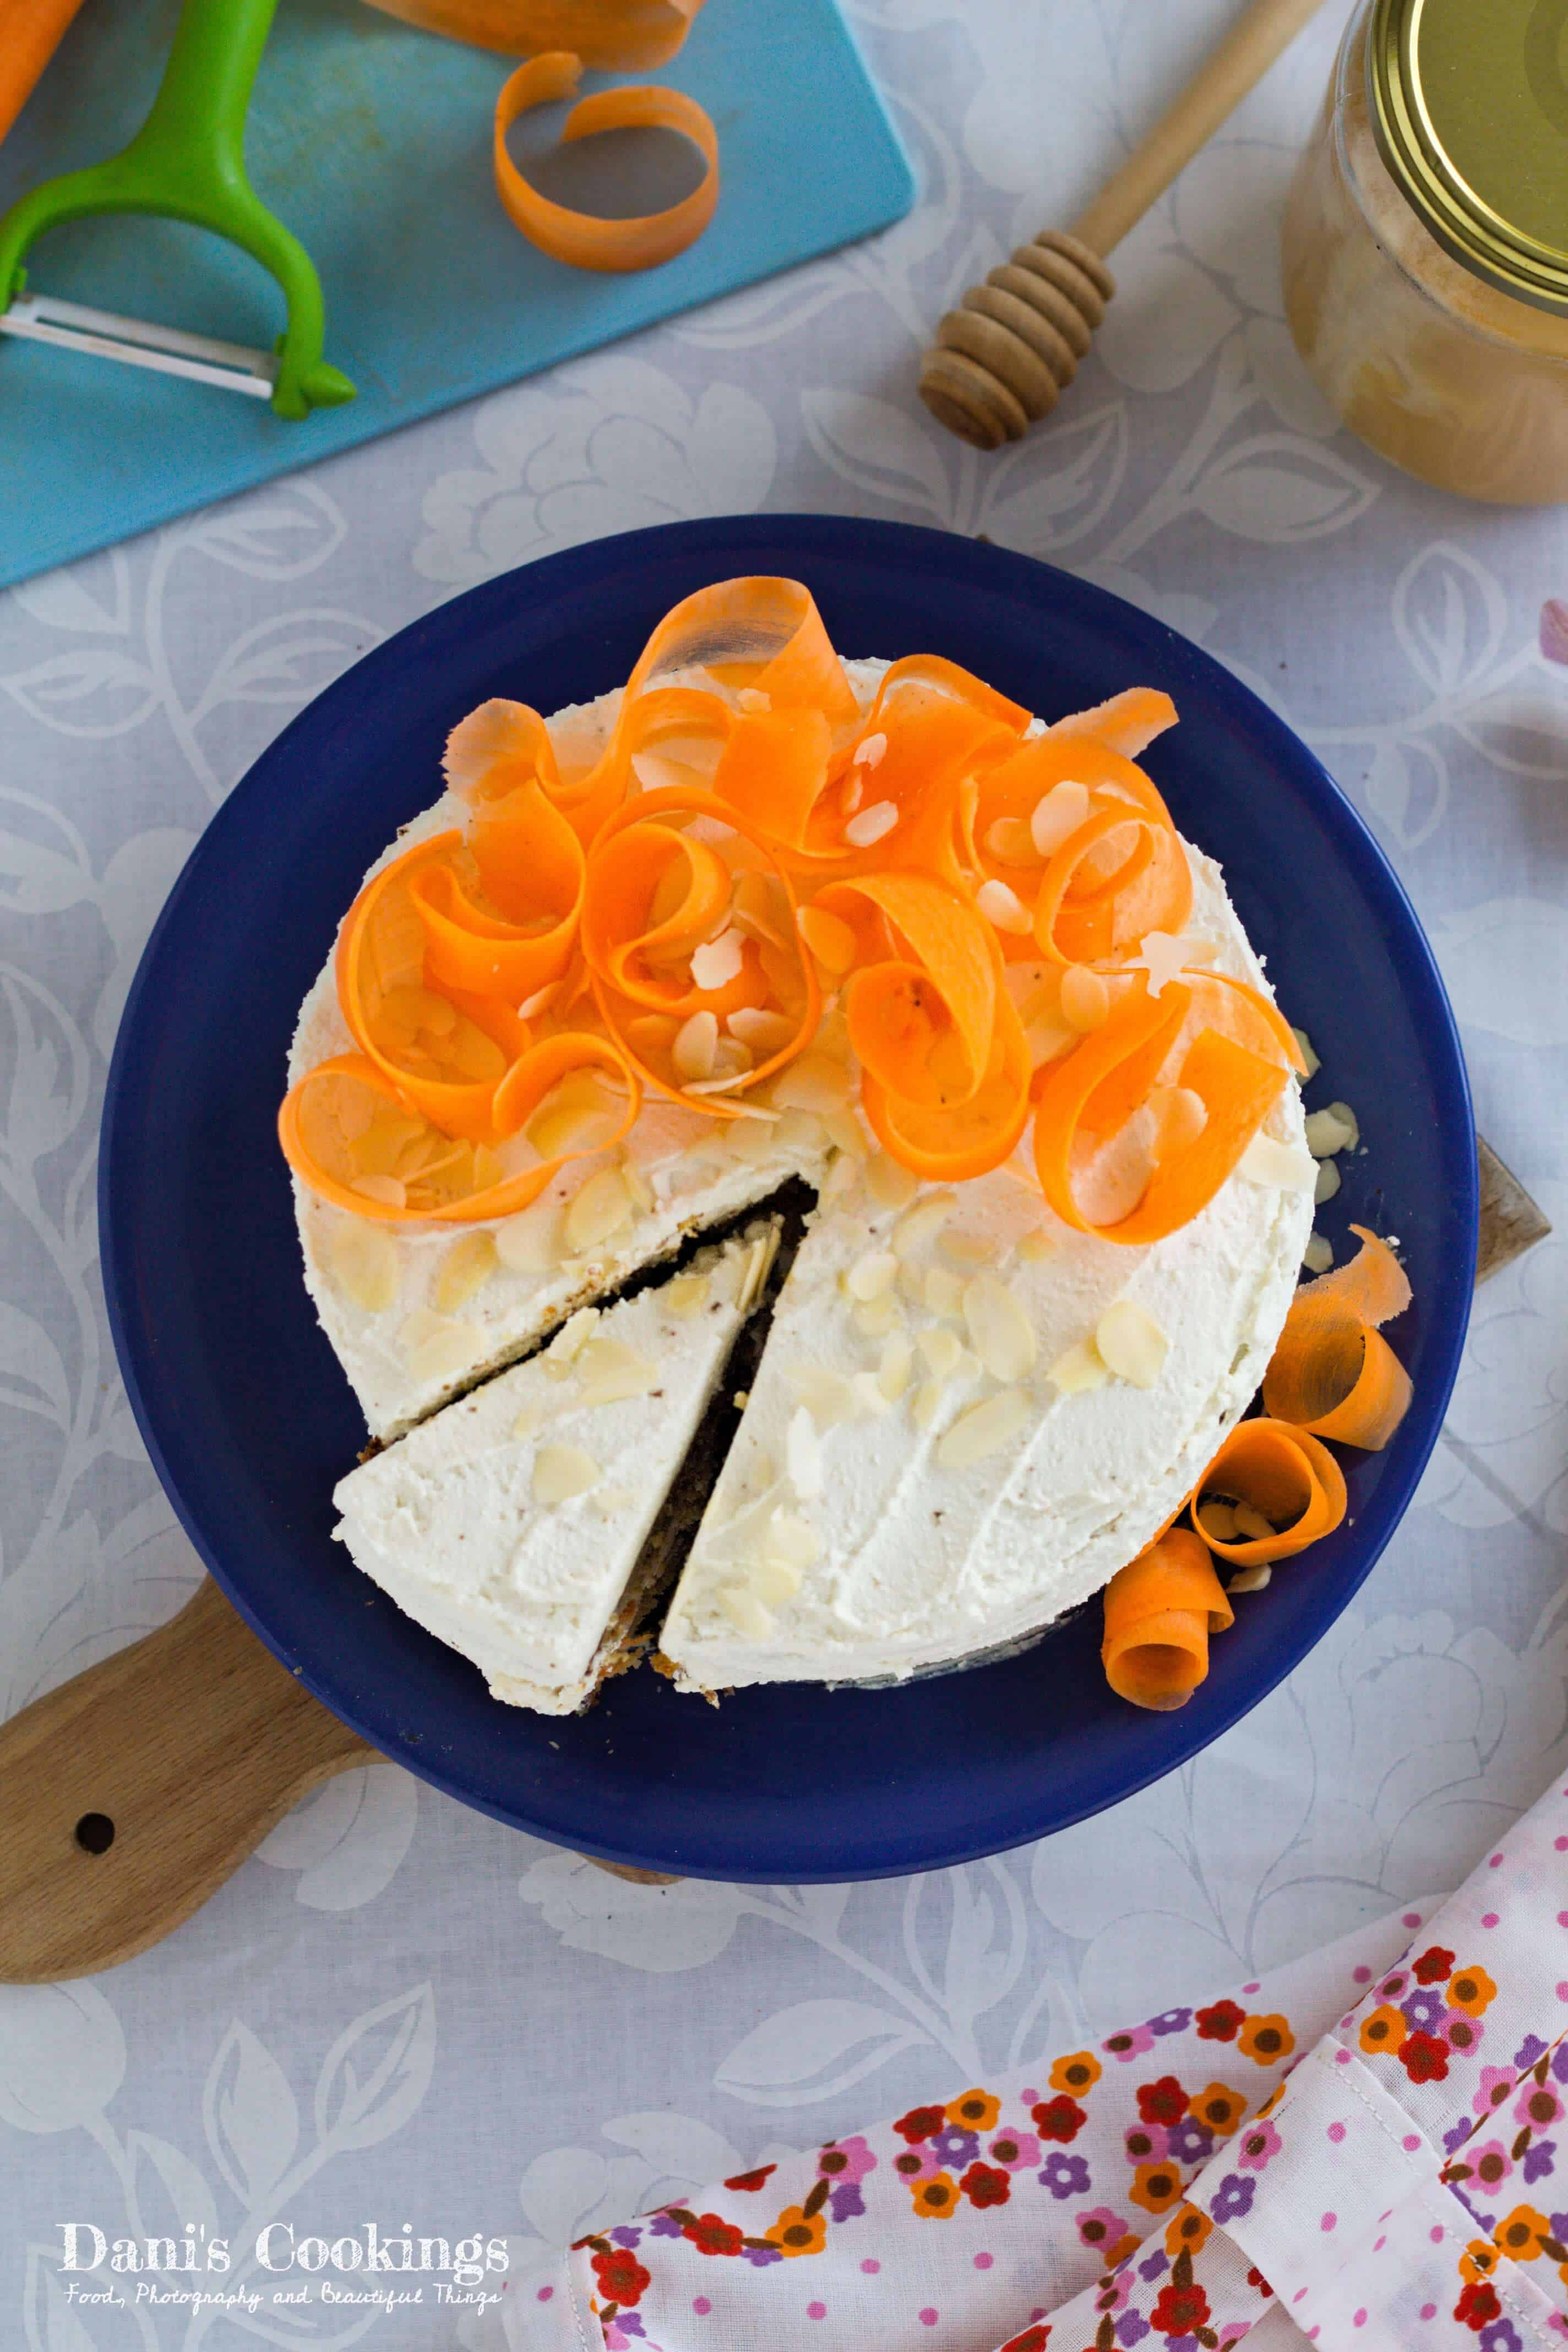 Healthy Carrot Cake With Almonds And Hazelnuts Dani S Cookings